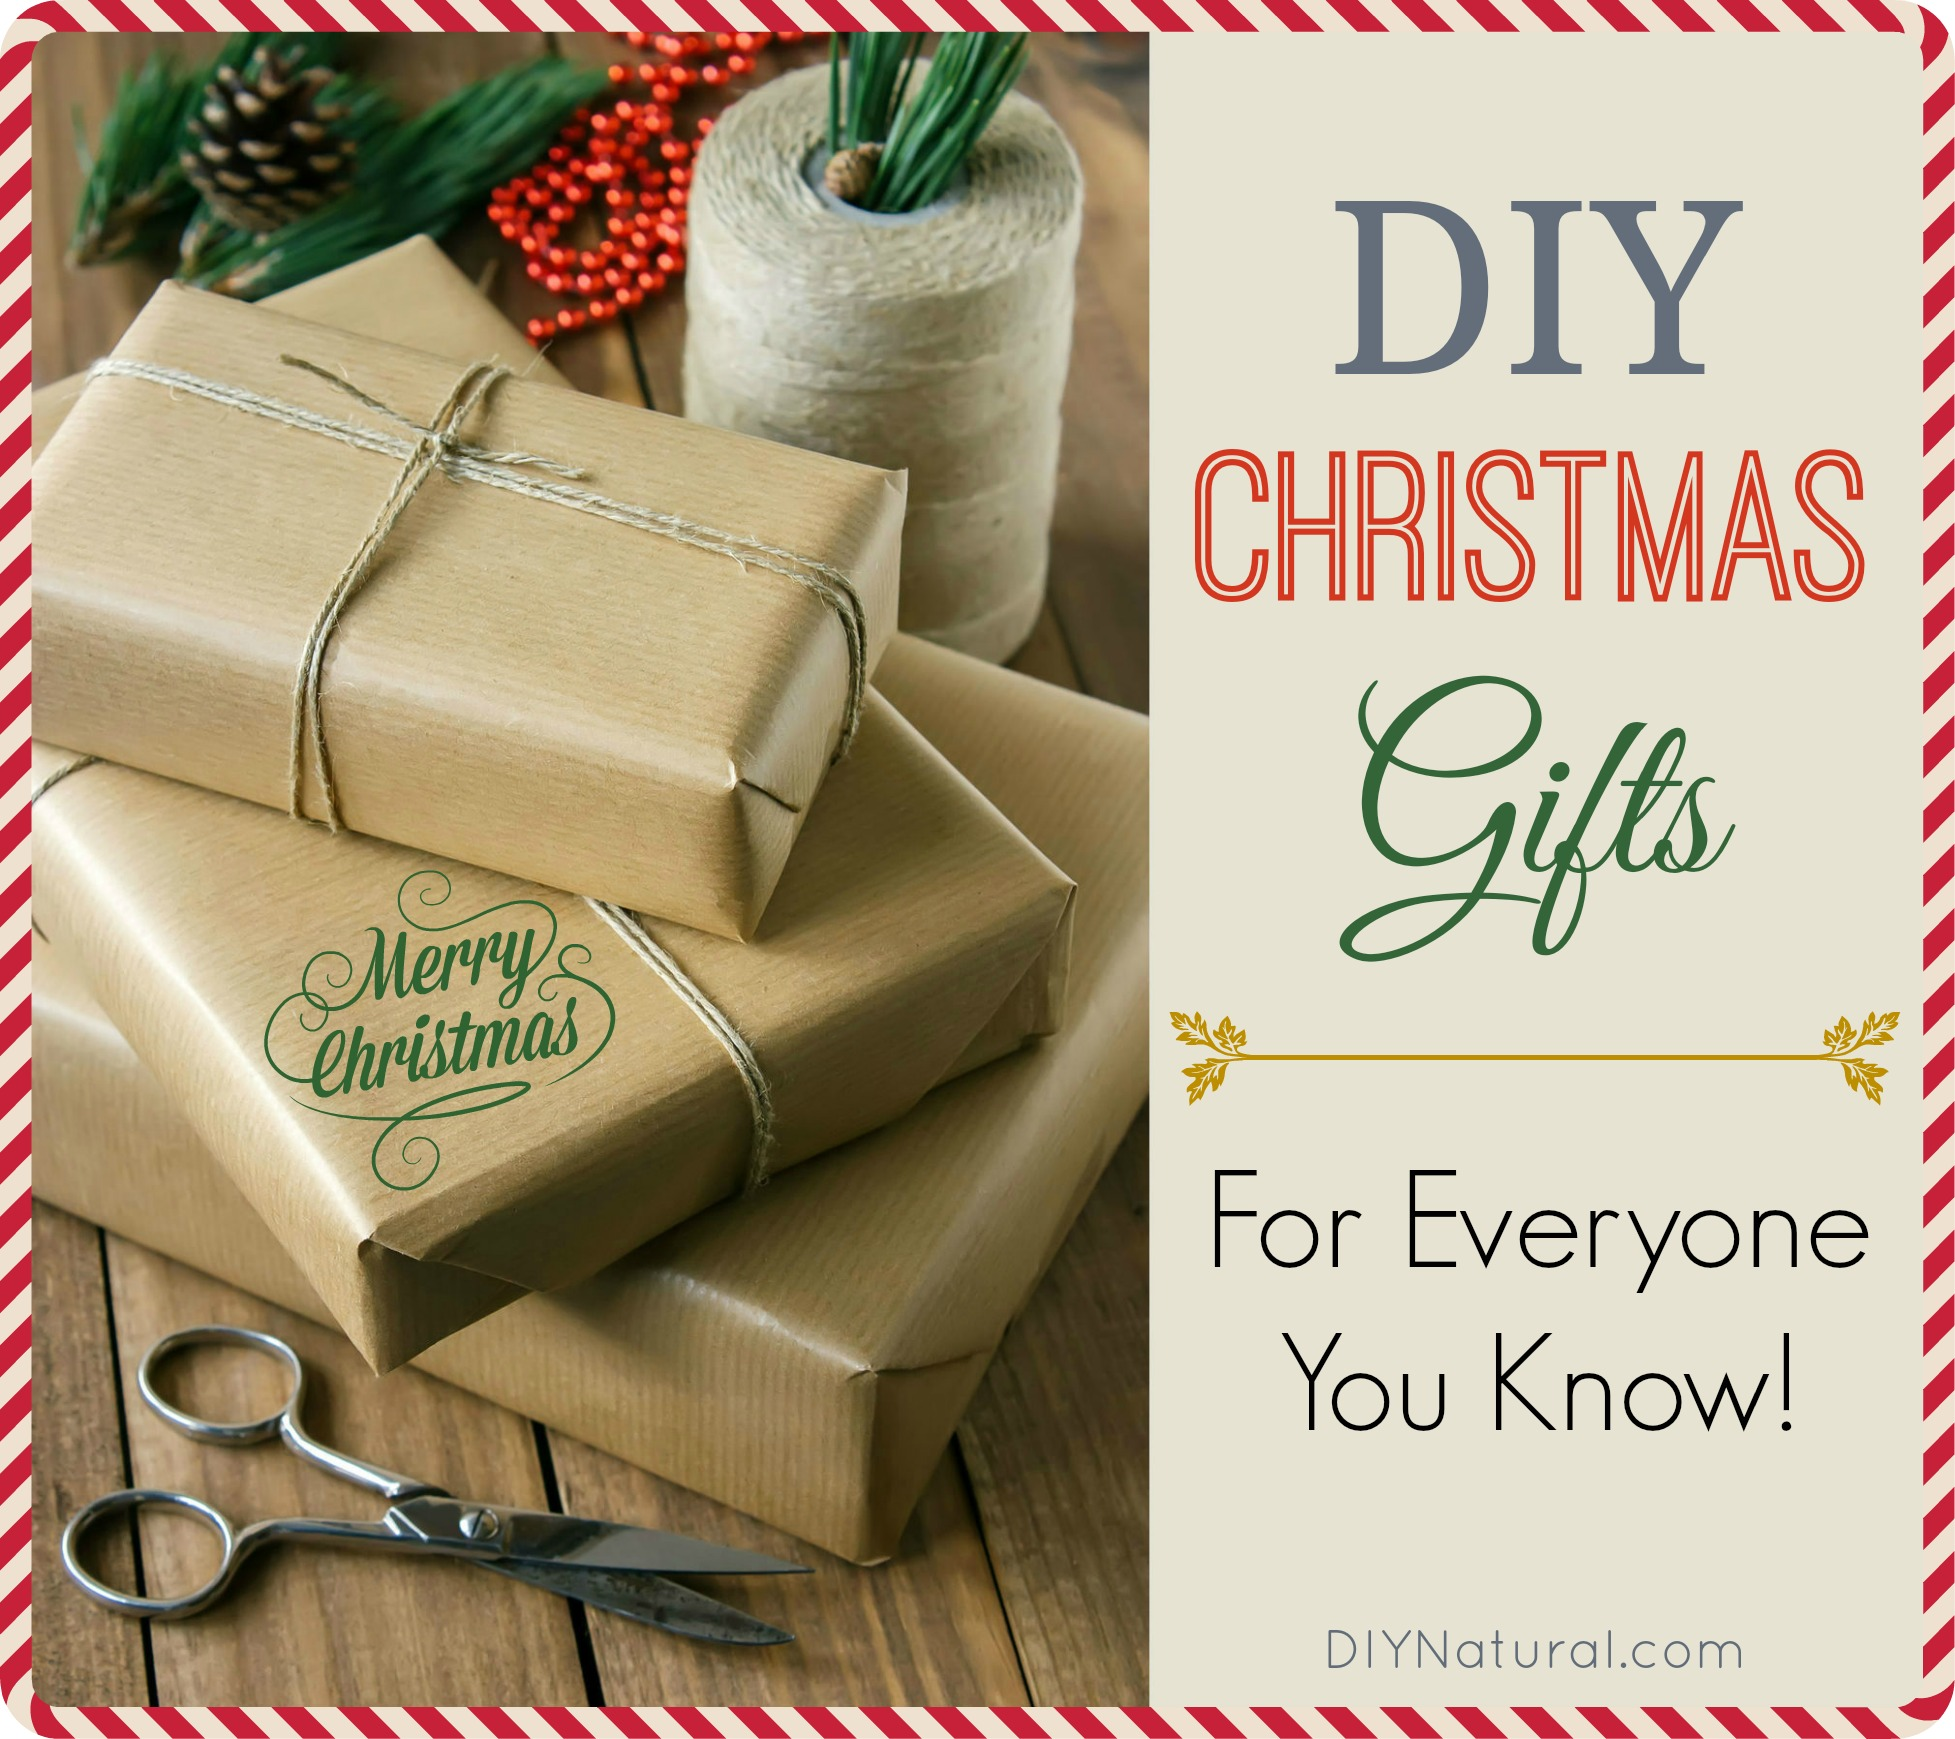 DIY Christmas Gifts For Everyone You Know!